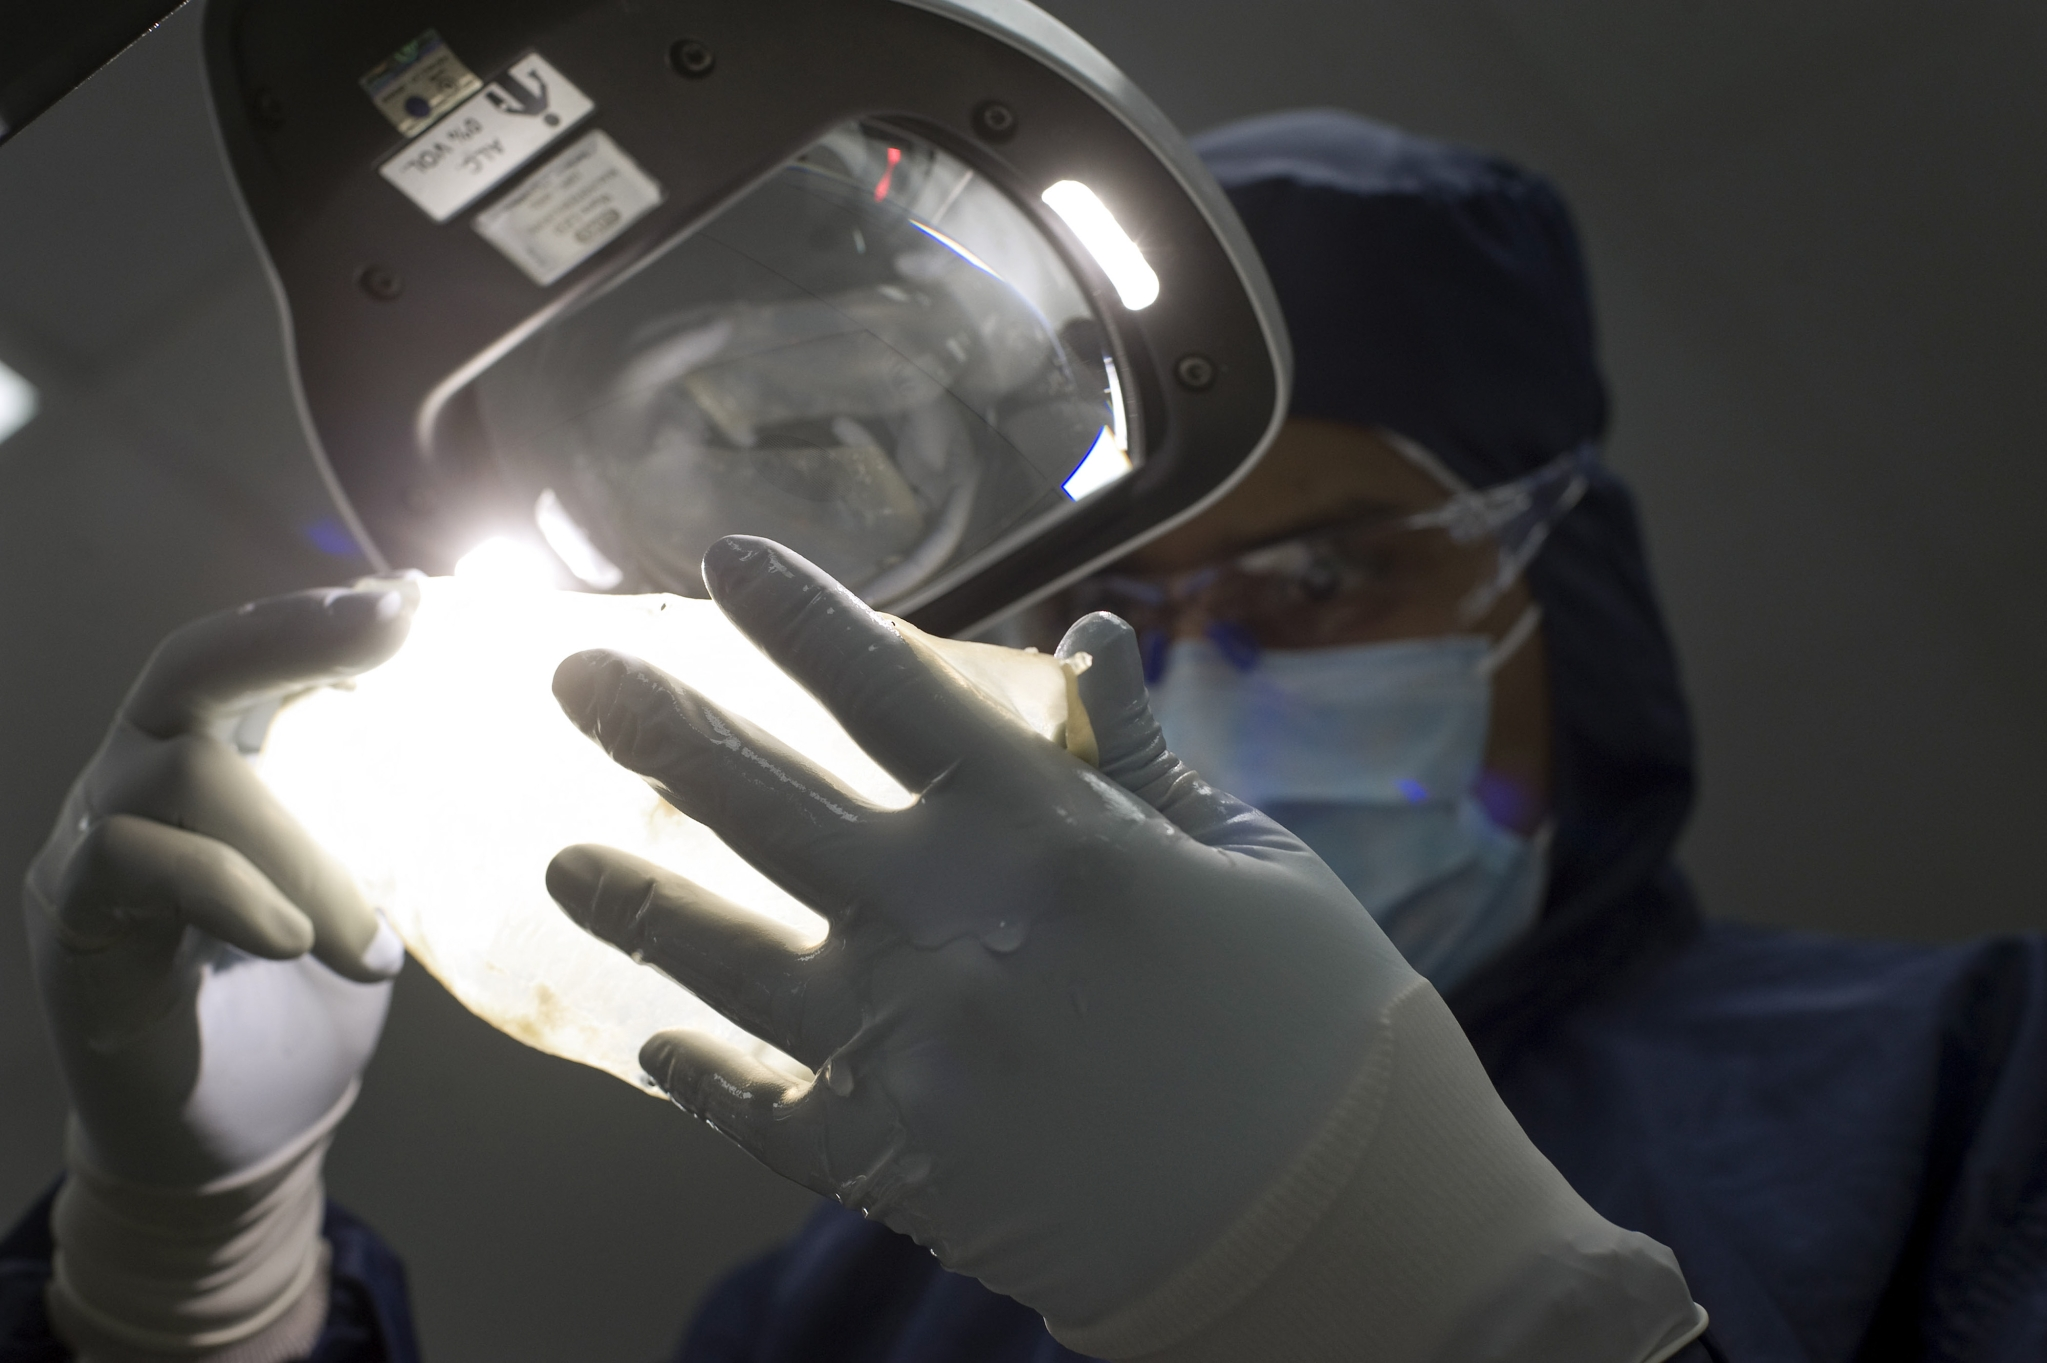 First Artificial Heart Approved For Sale in Europe